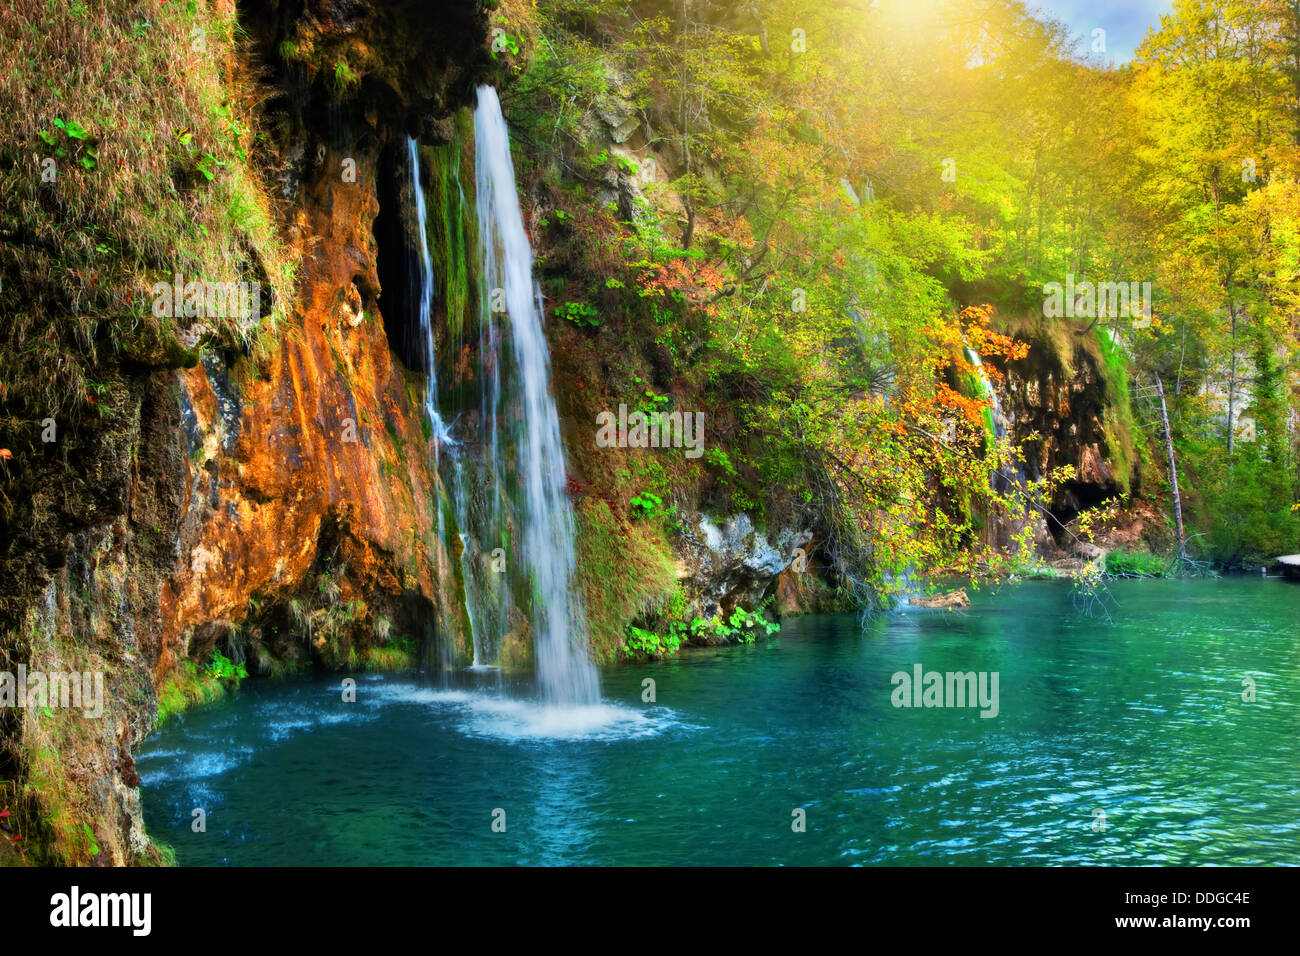 Waterfall in a forest in the Plitvice Lakes National Park, Croatia, Europe - Stock Image